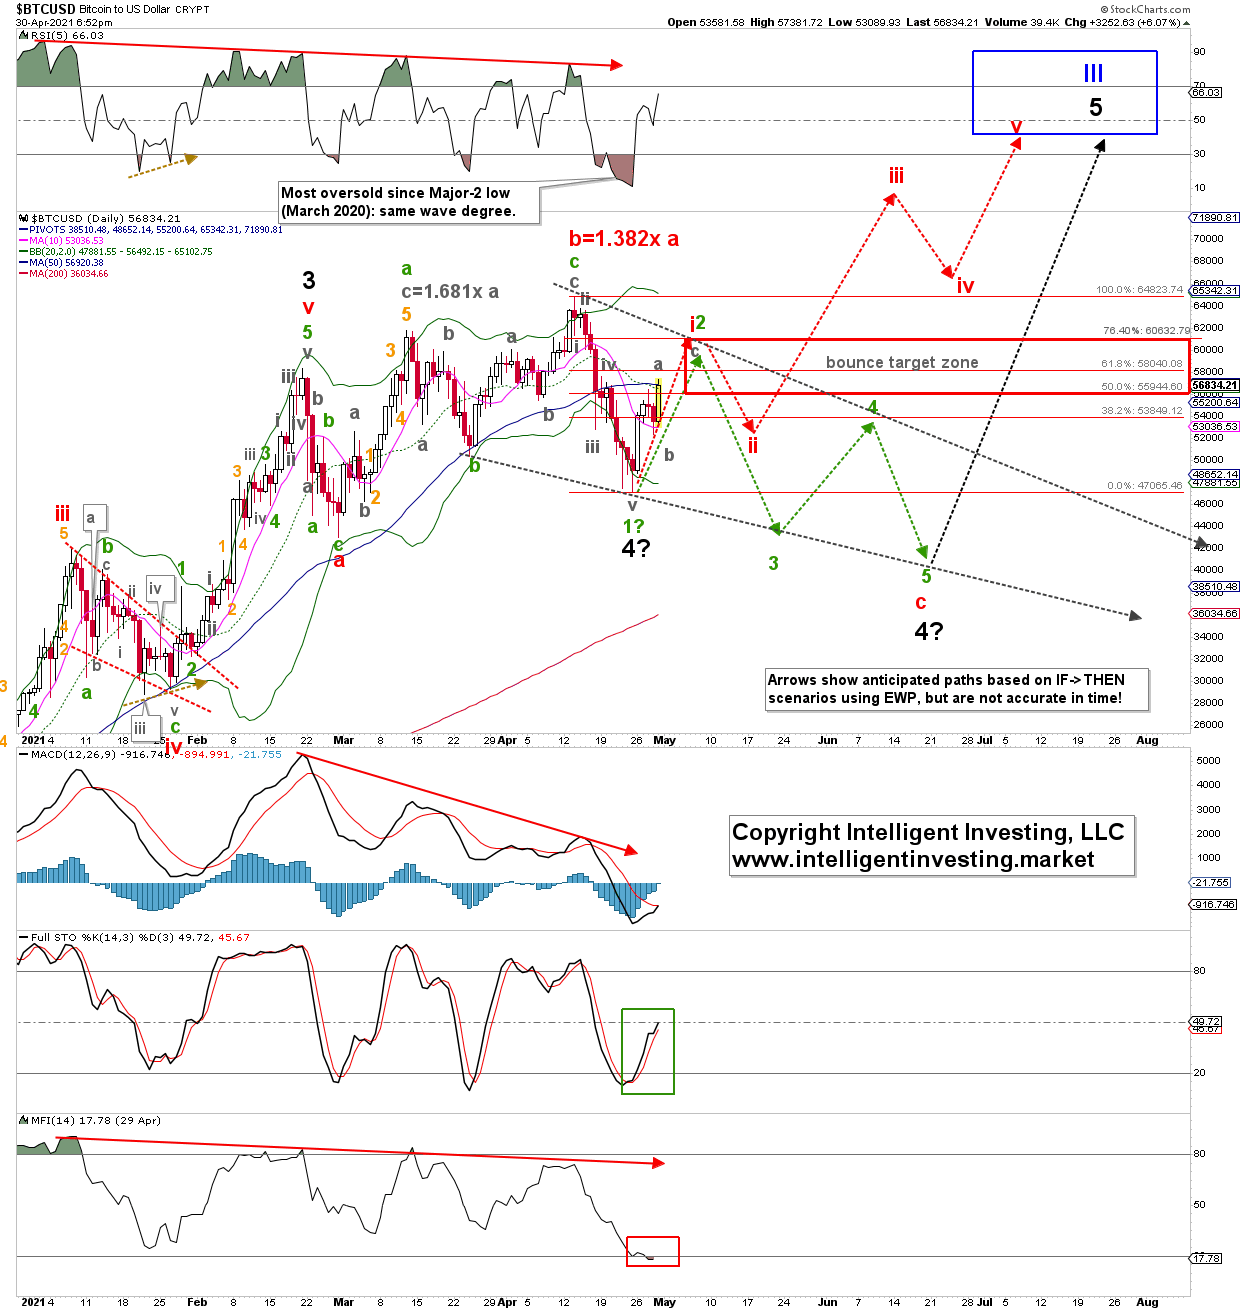 Bitcoin Daily Chart With EWP And Technical Indicators.